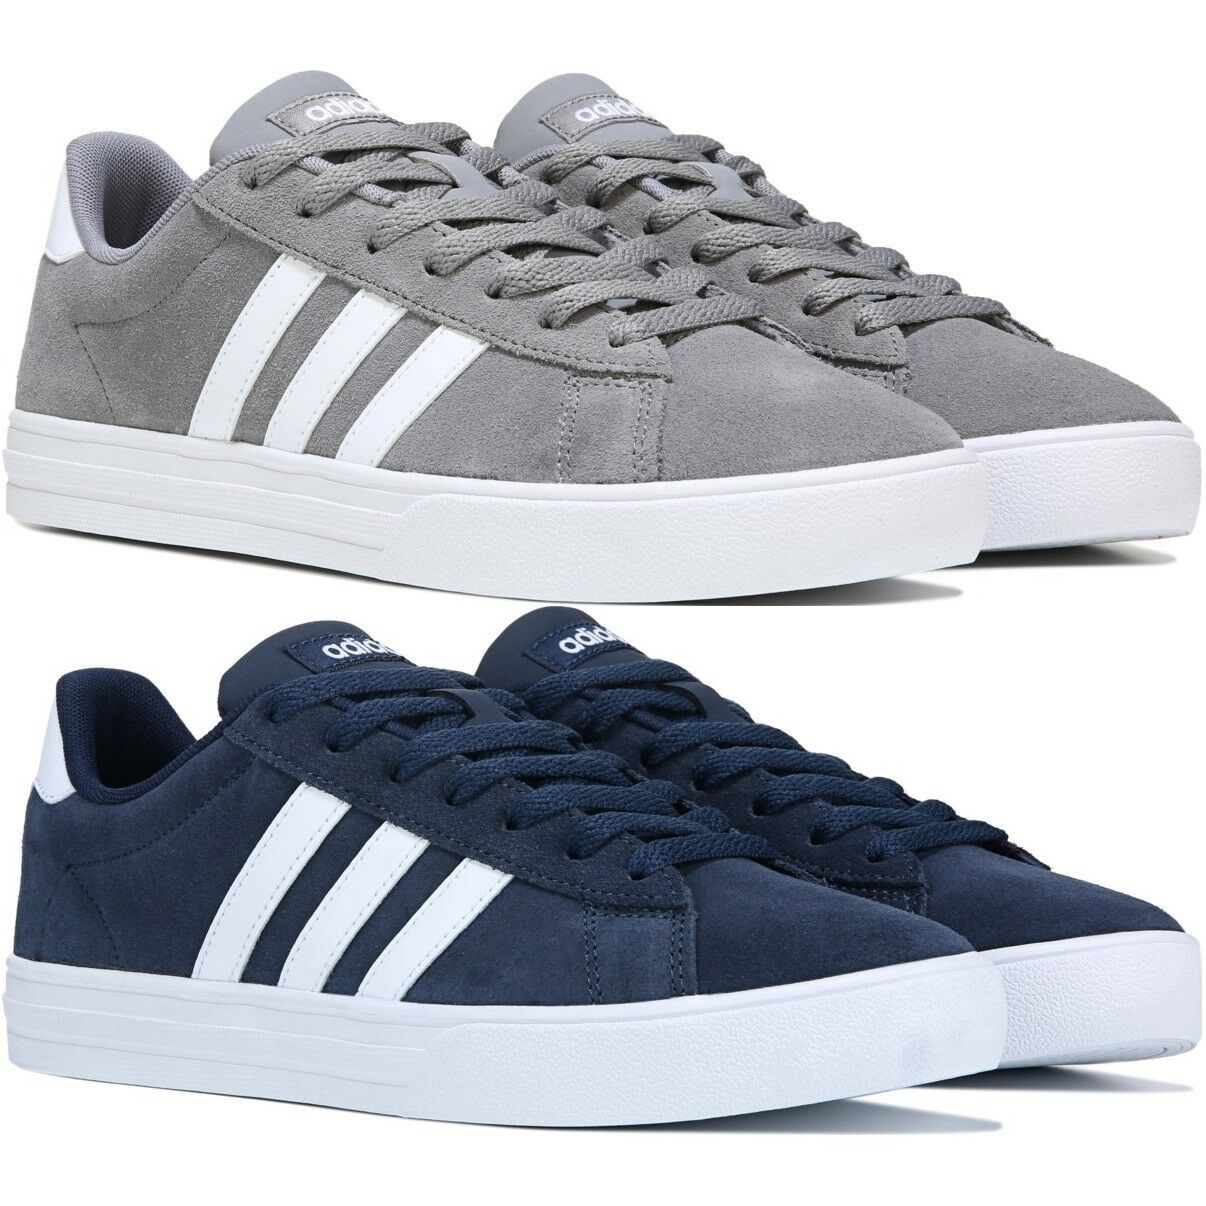 Adidas DAILY 2.0 SUEDE Men's Sneakers Lifestyle Comfy Shoes